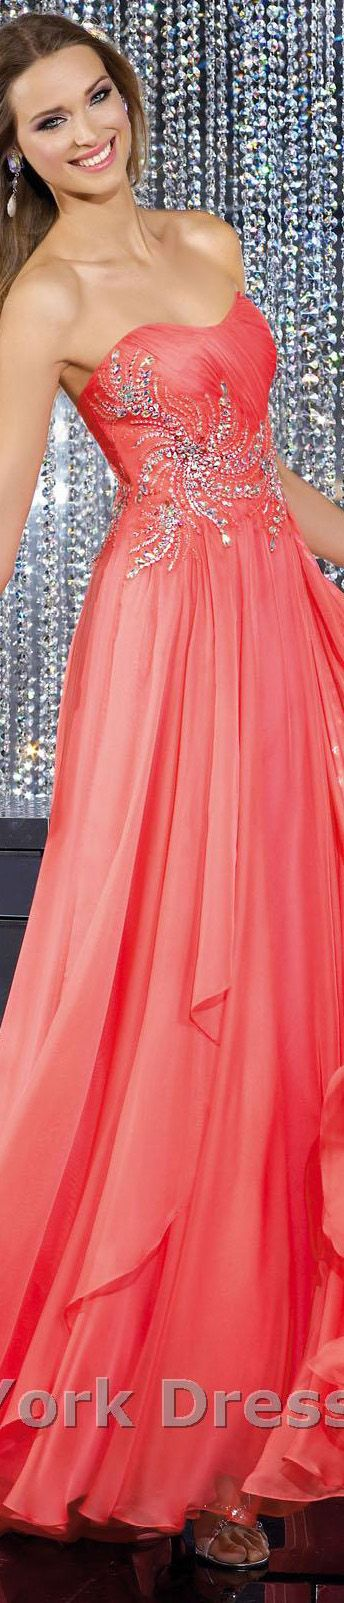 Coral evening gown...exquisite detail.